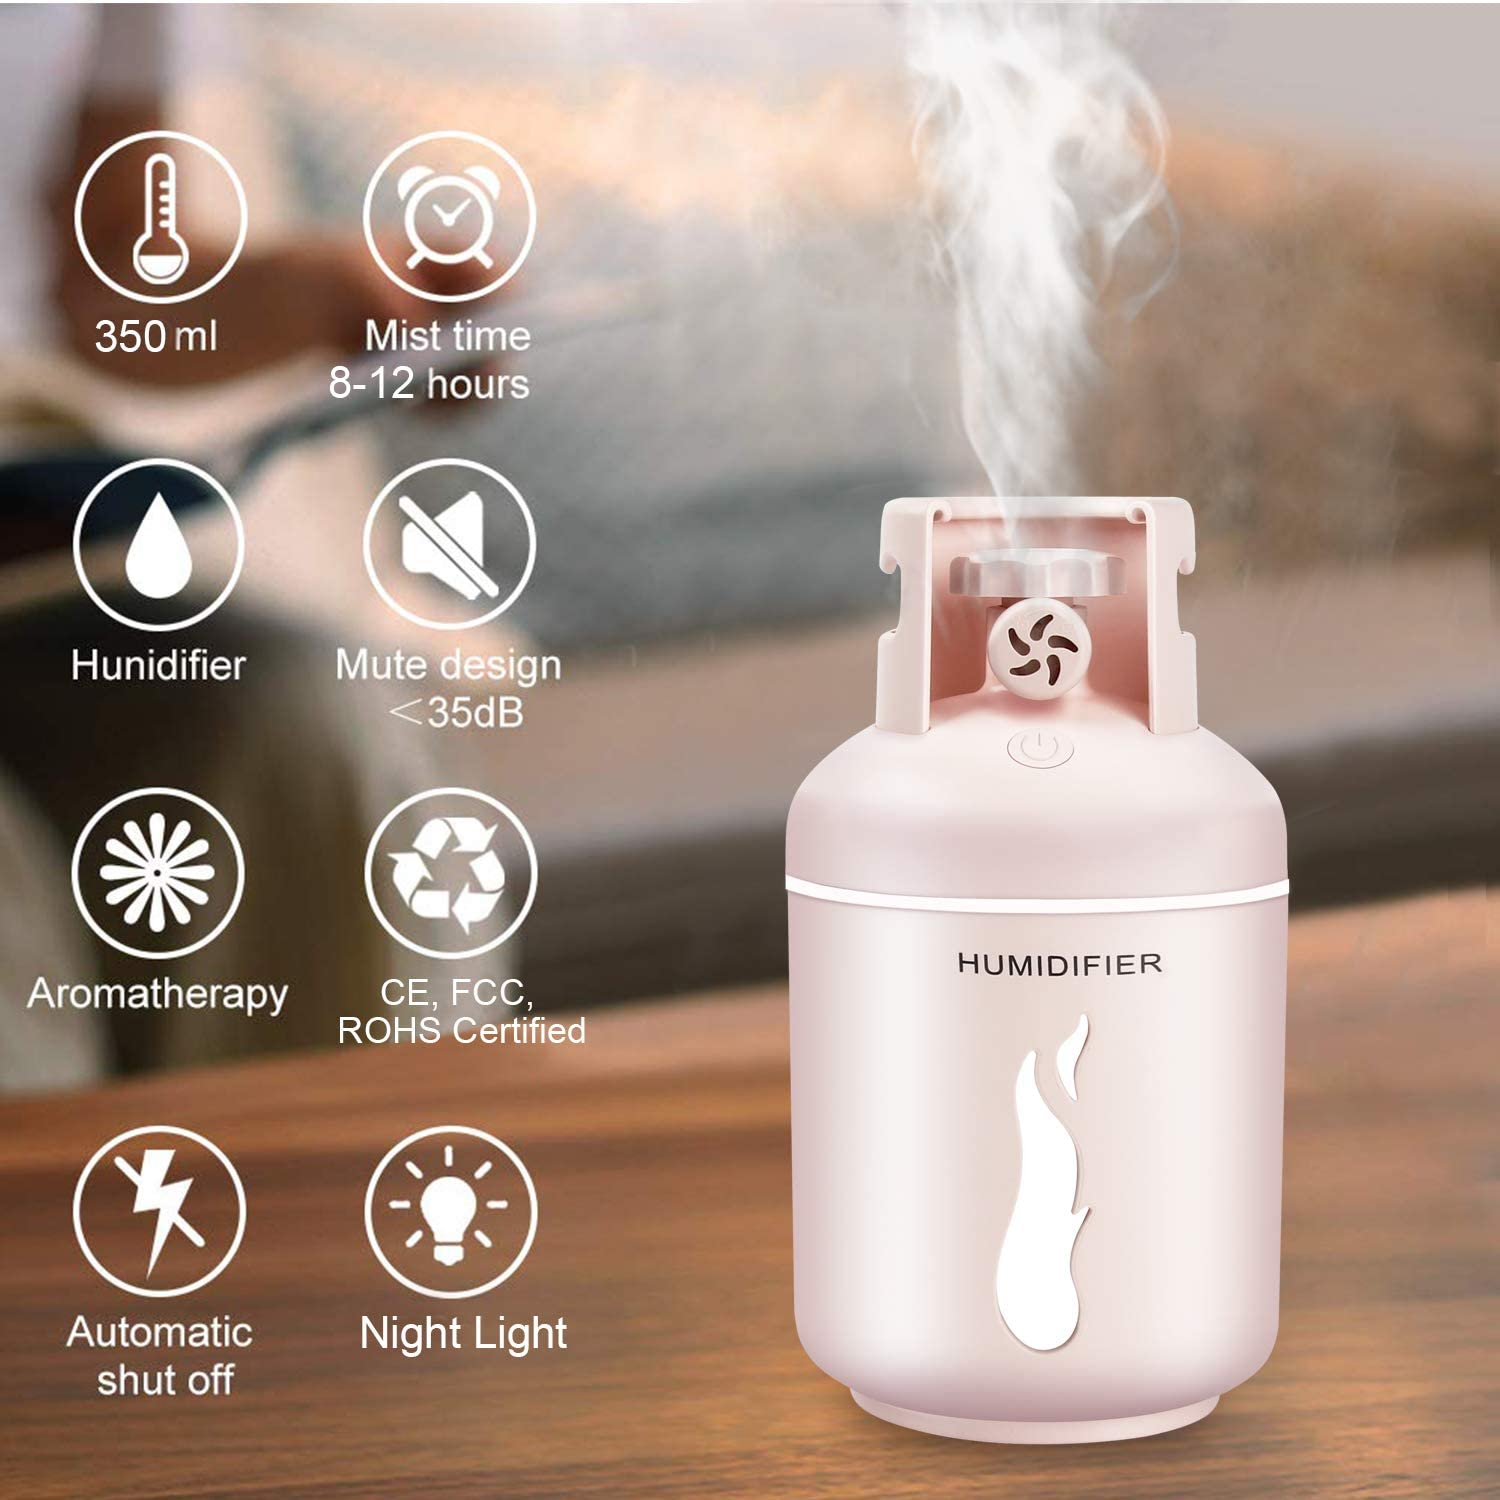 DCMEKA Car Humidifier, Mini Travel Portable Humidifier USB Desk Humidifier, Essential Oil Diffuser, Up to 8H Use Car Aroma Diffuser, Personal